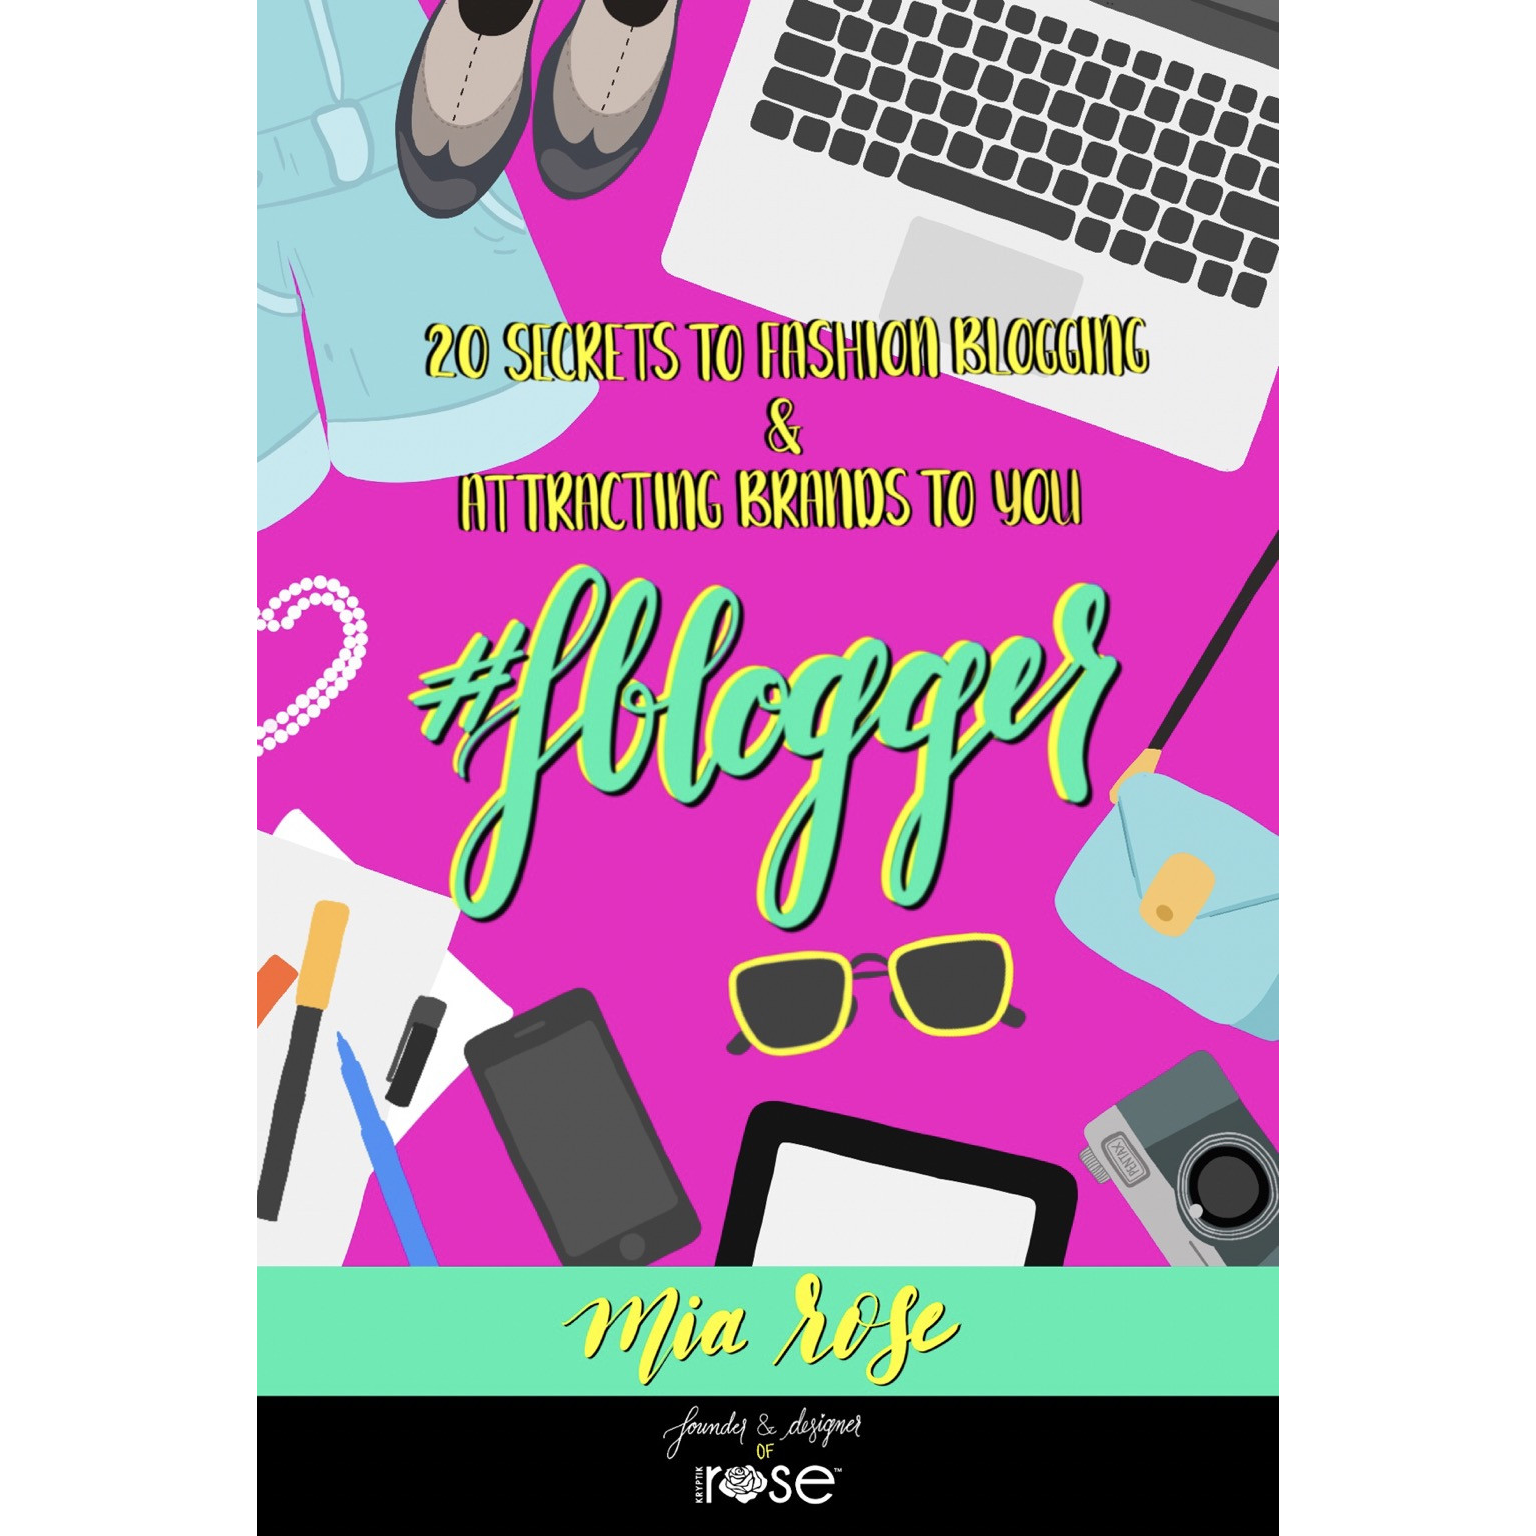 """#FBLOGGER: 20 Secrets to Fashion Blogging & Attracting Brands to You"" SAMPLE eBook -  - KryptikRose®"